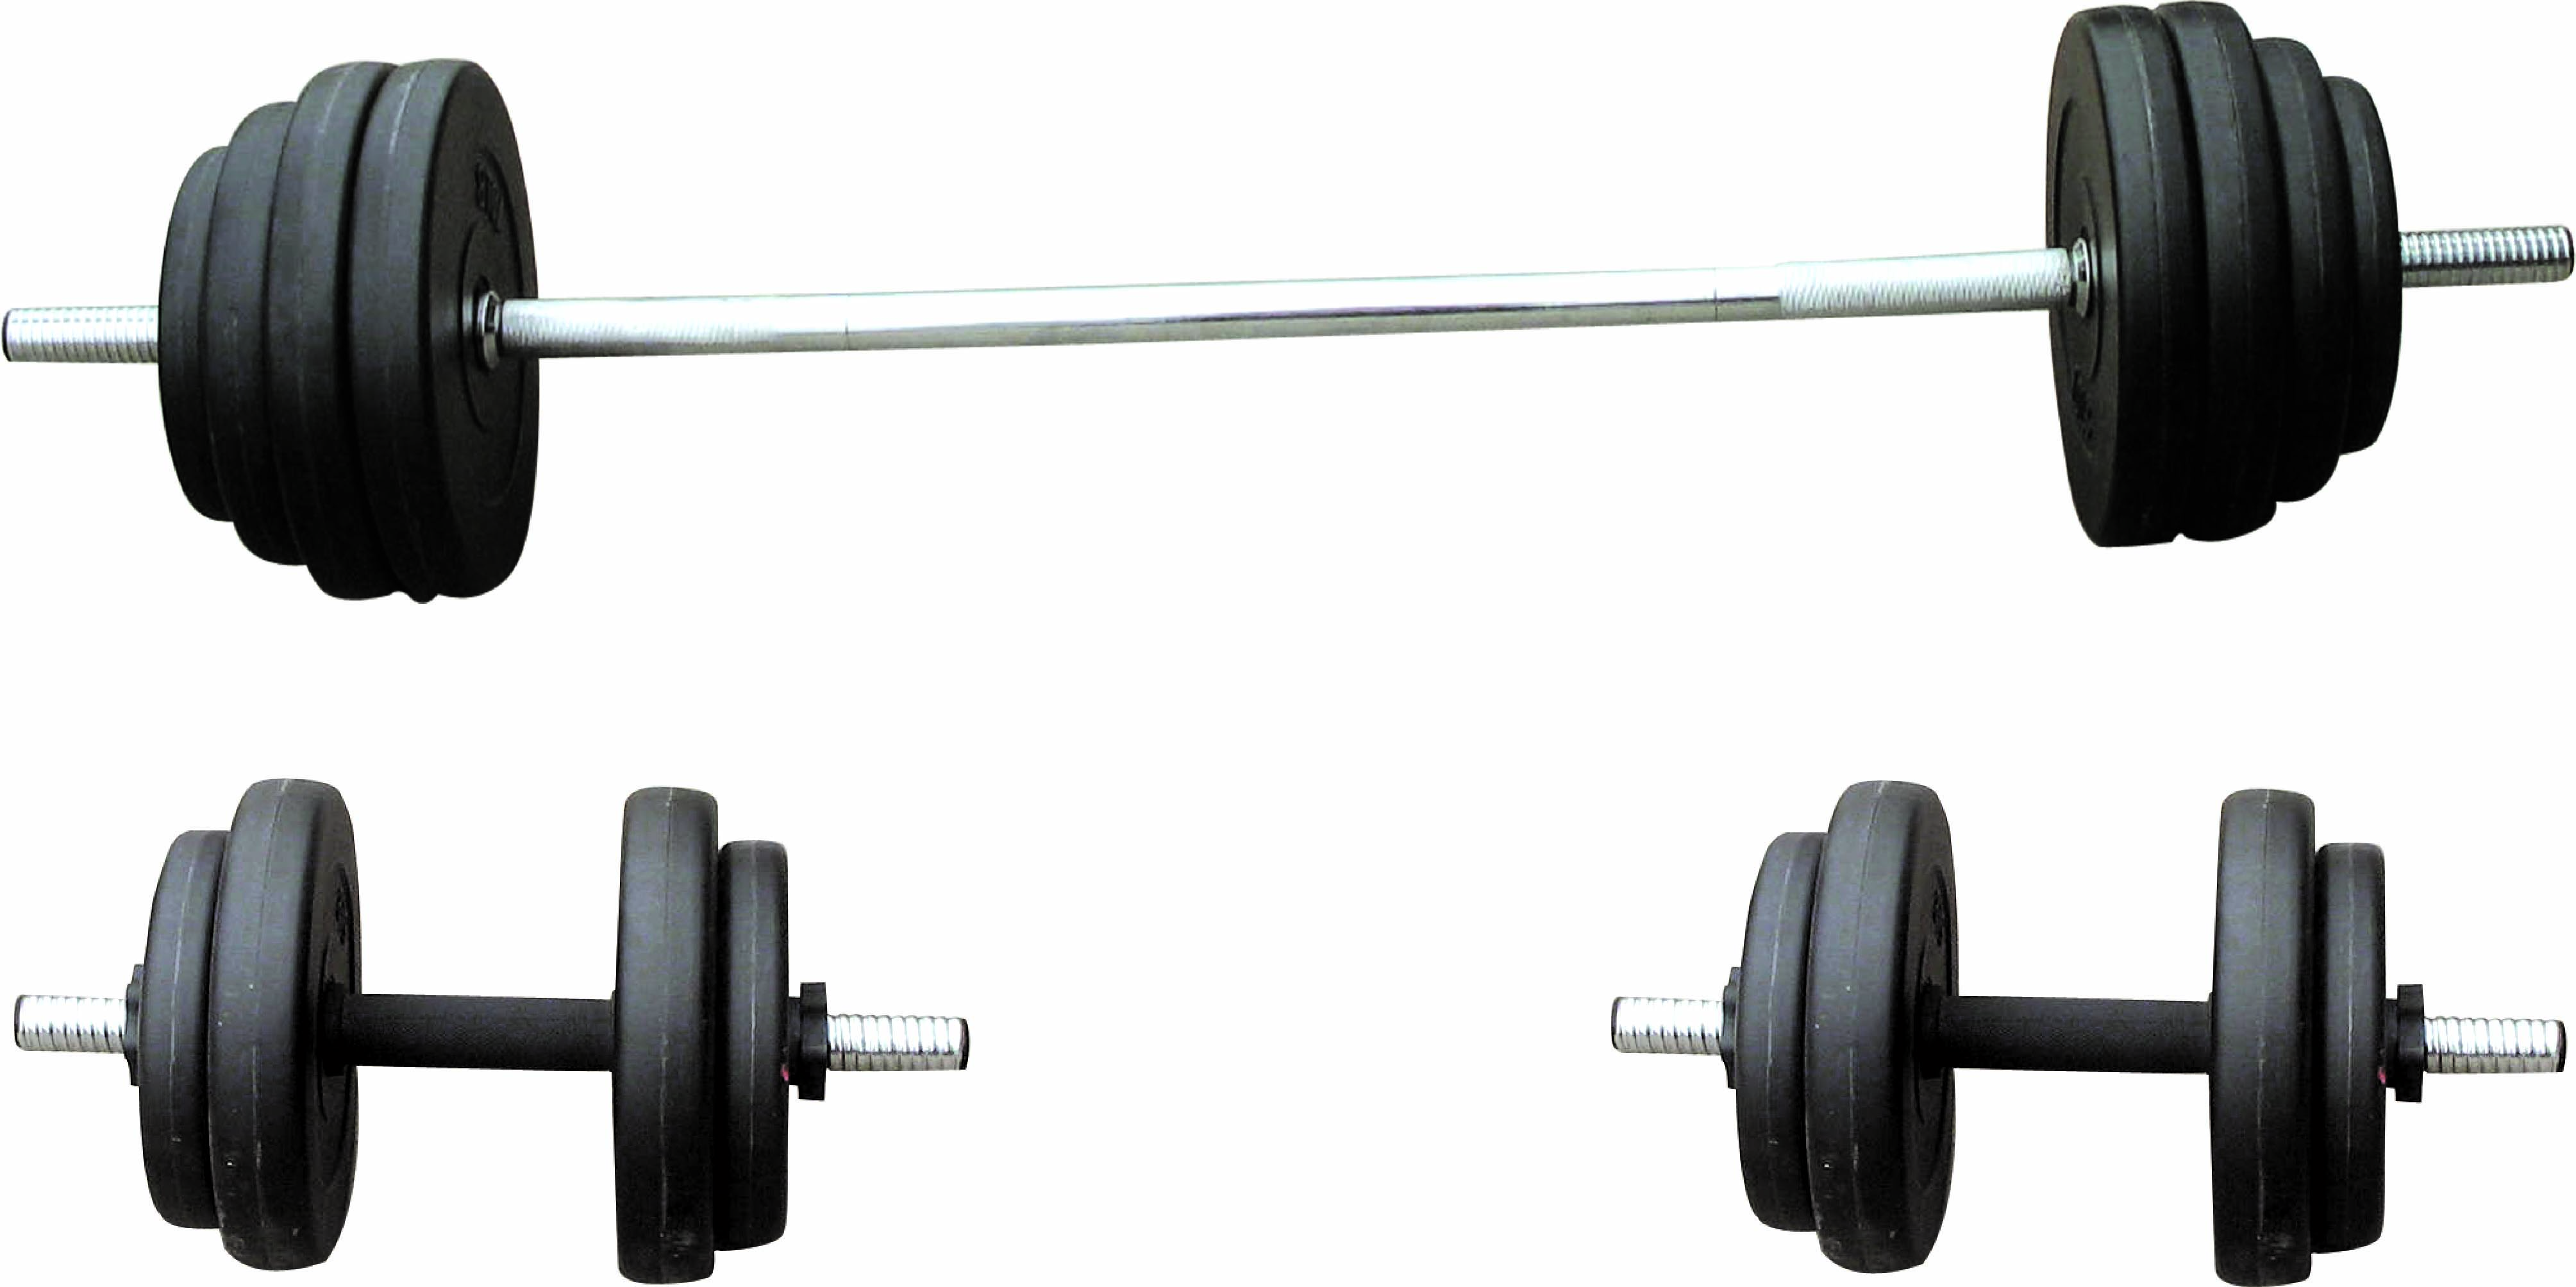 Barbell clipart gym equipment fitness, Barbell gym equipment.